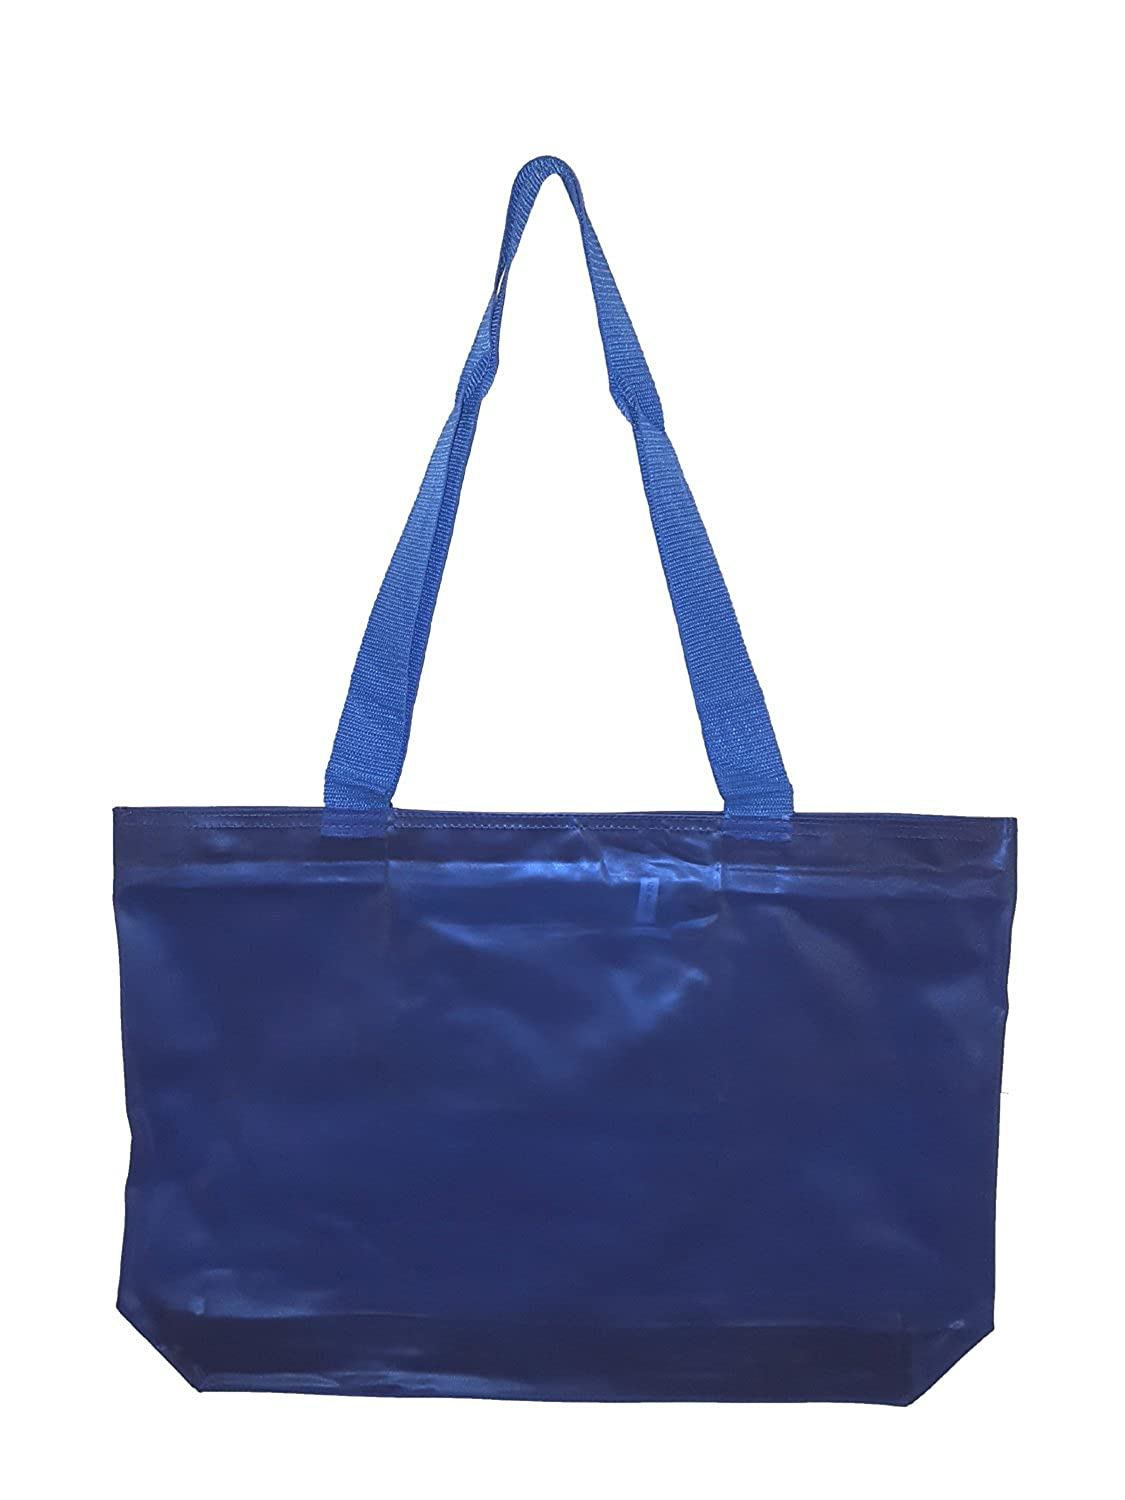 Penelope Tote Overnight Bag Luggage Monogrammed Personalized FREE Shipping Offer!